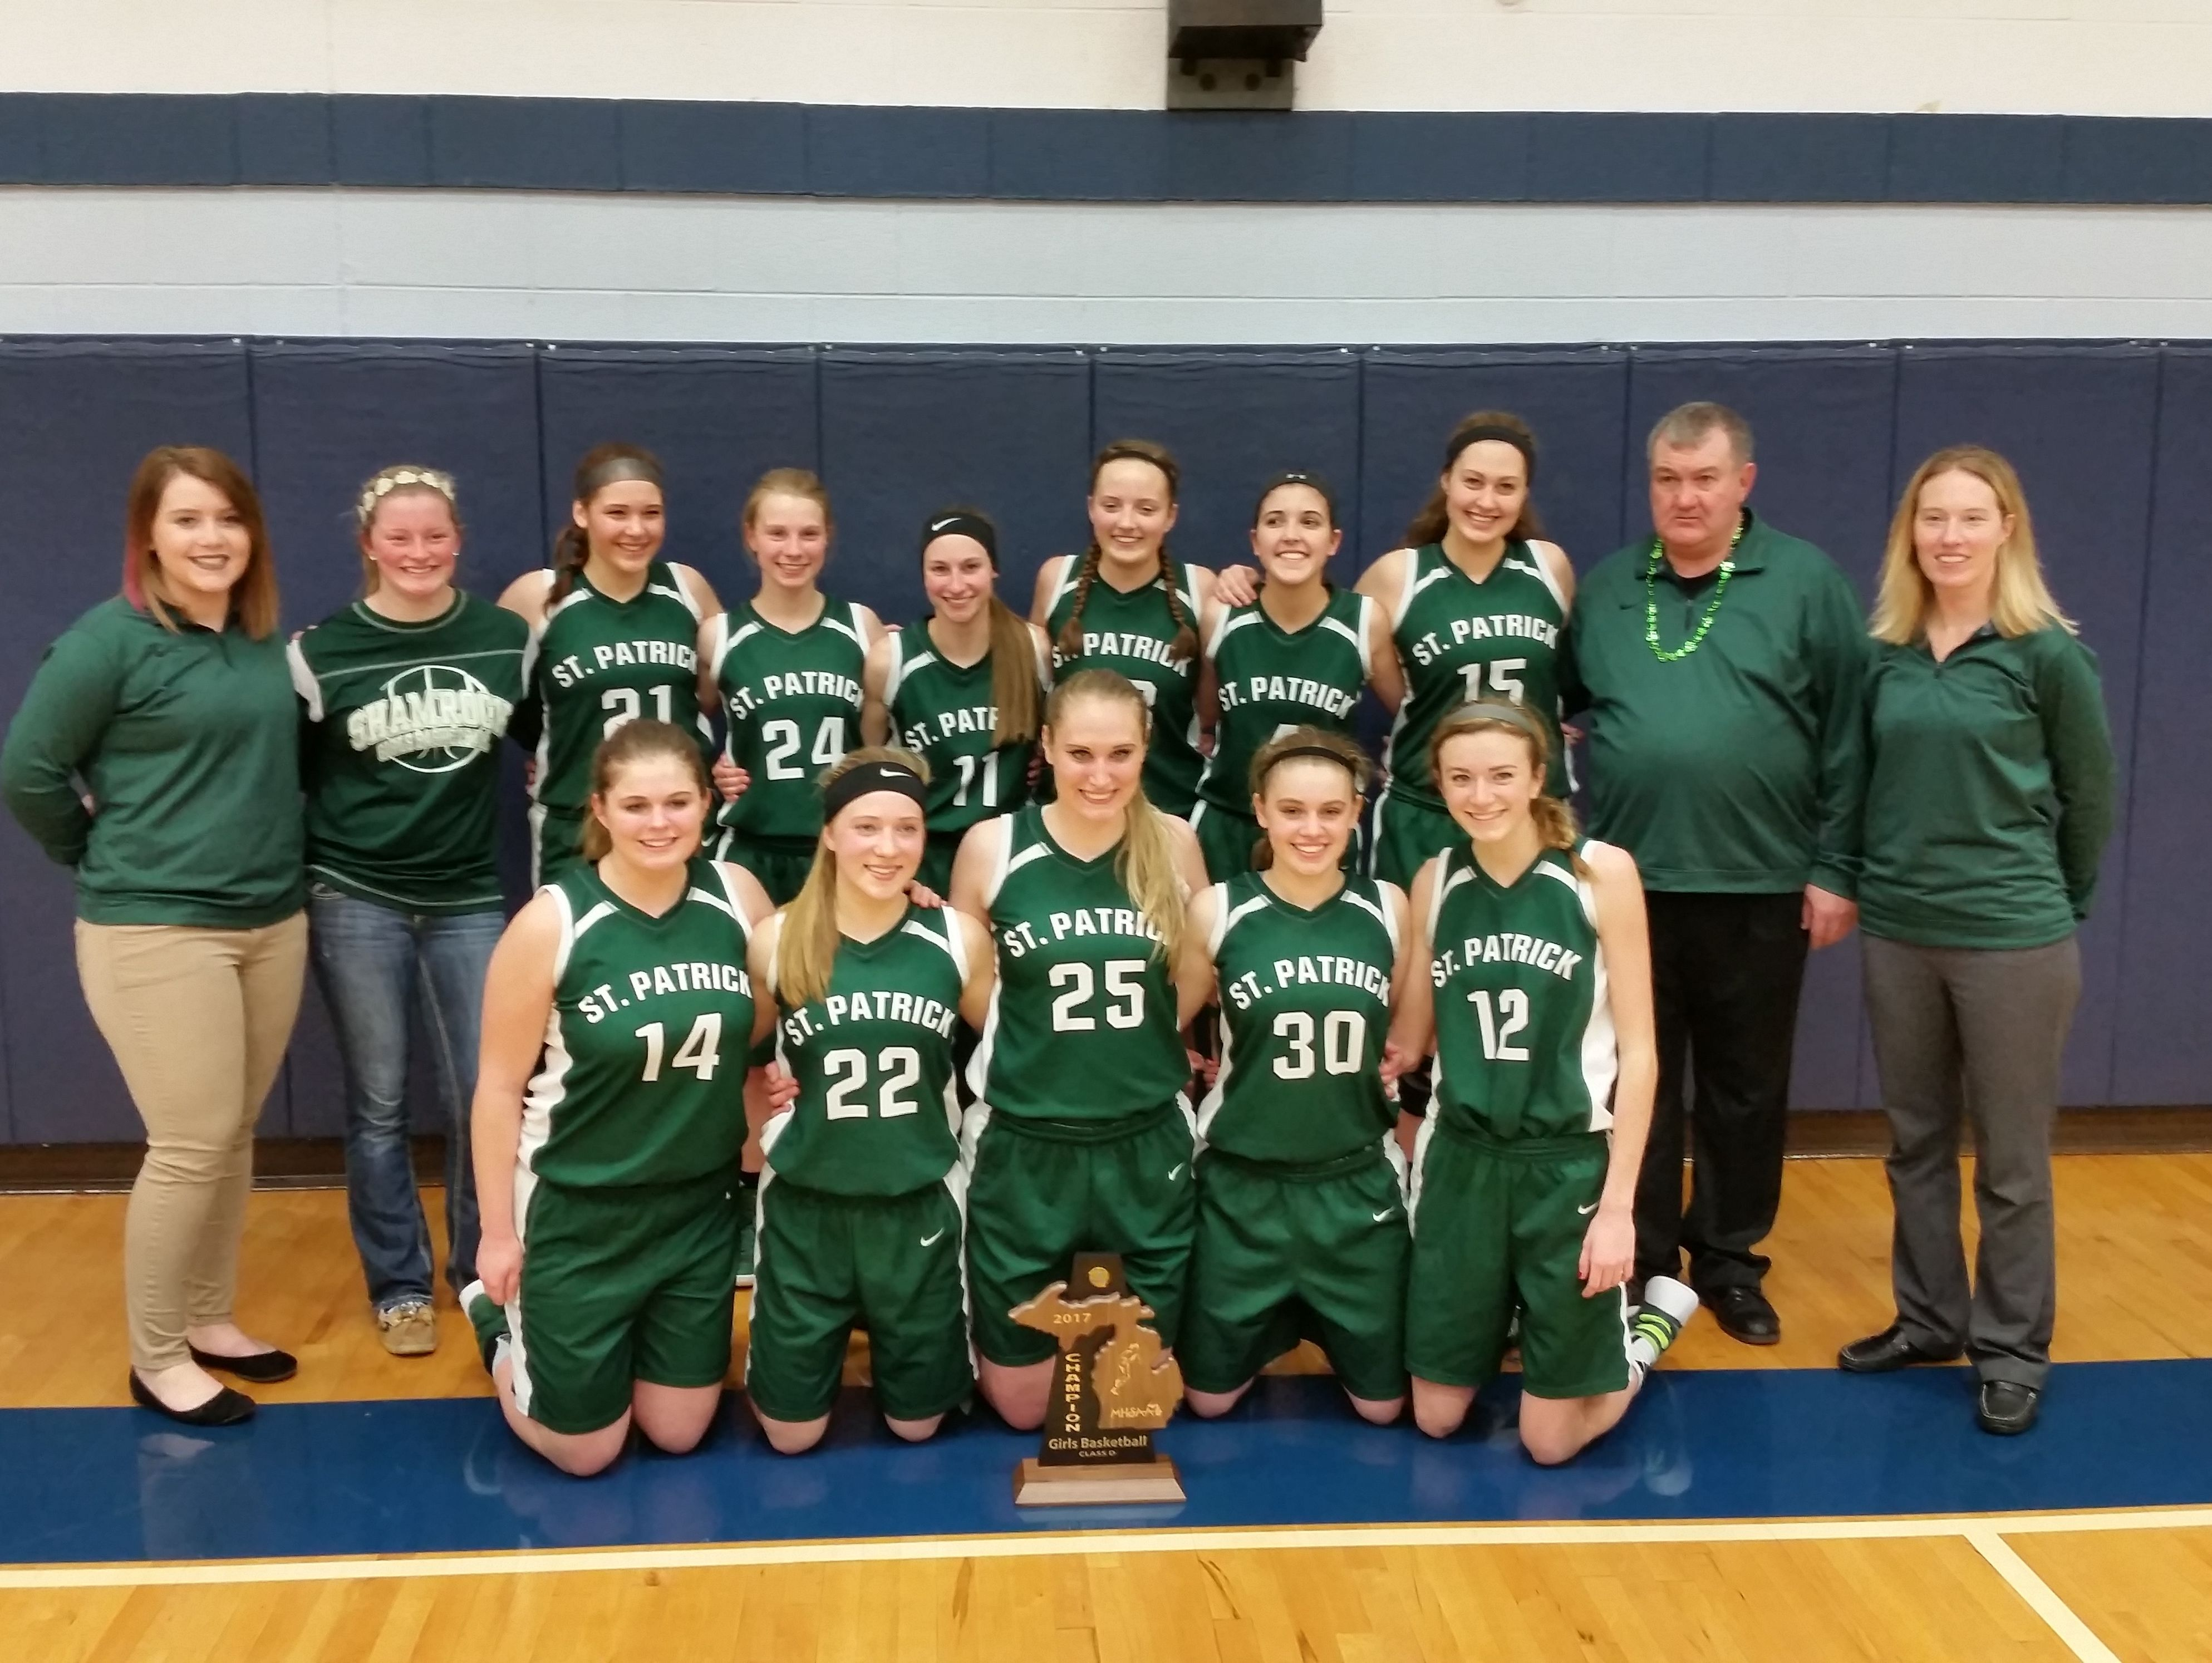 The Portland St. Patrick girls basketball team poses with its district championship trophy Friday. The Shamrocks are among the area teams competing in regionals next week.